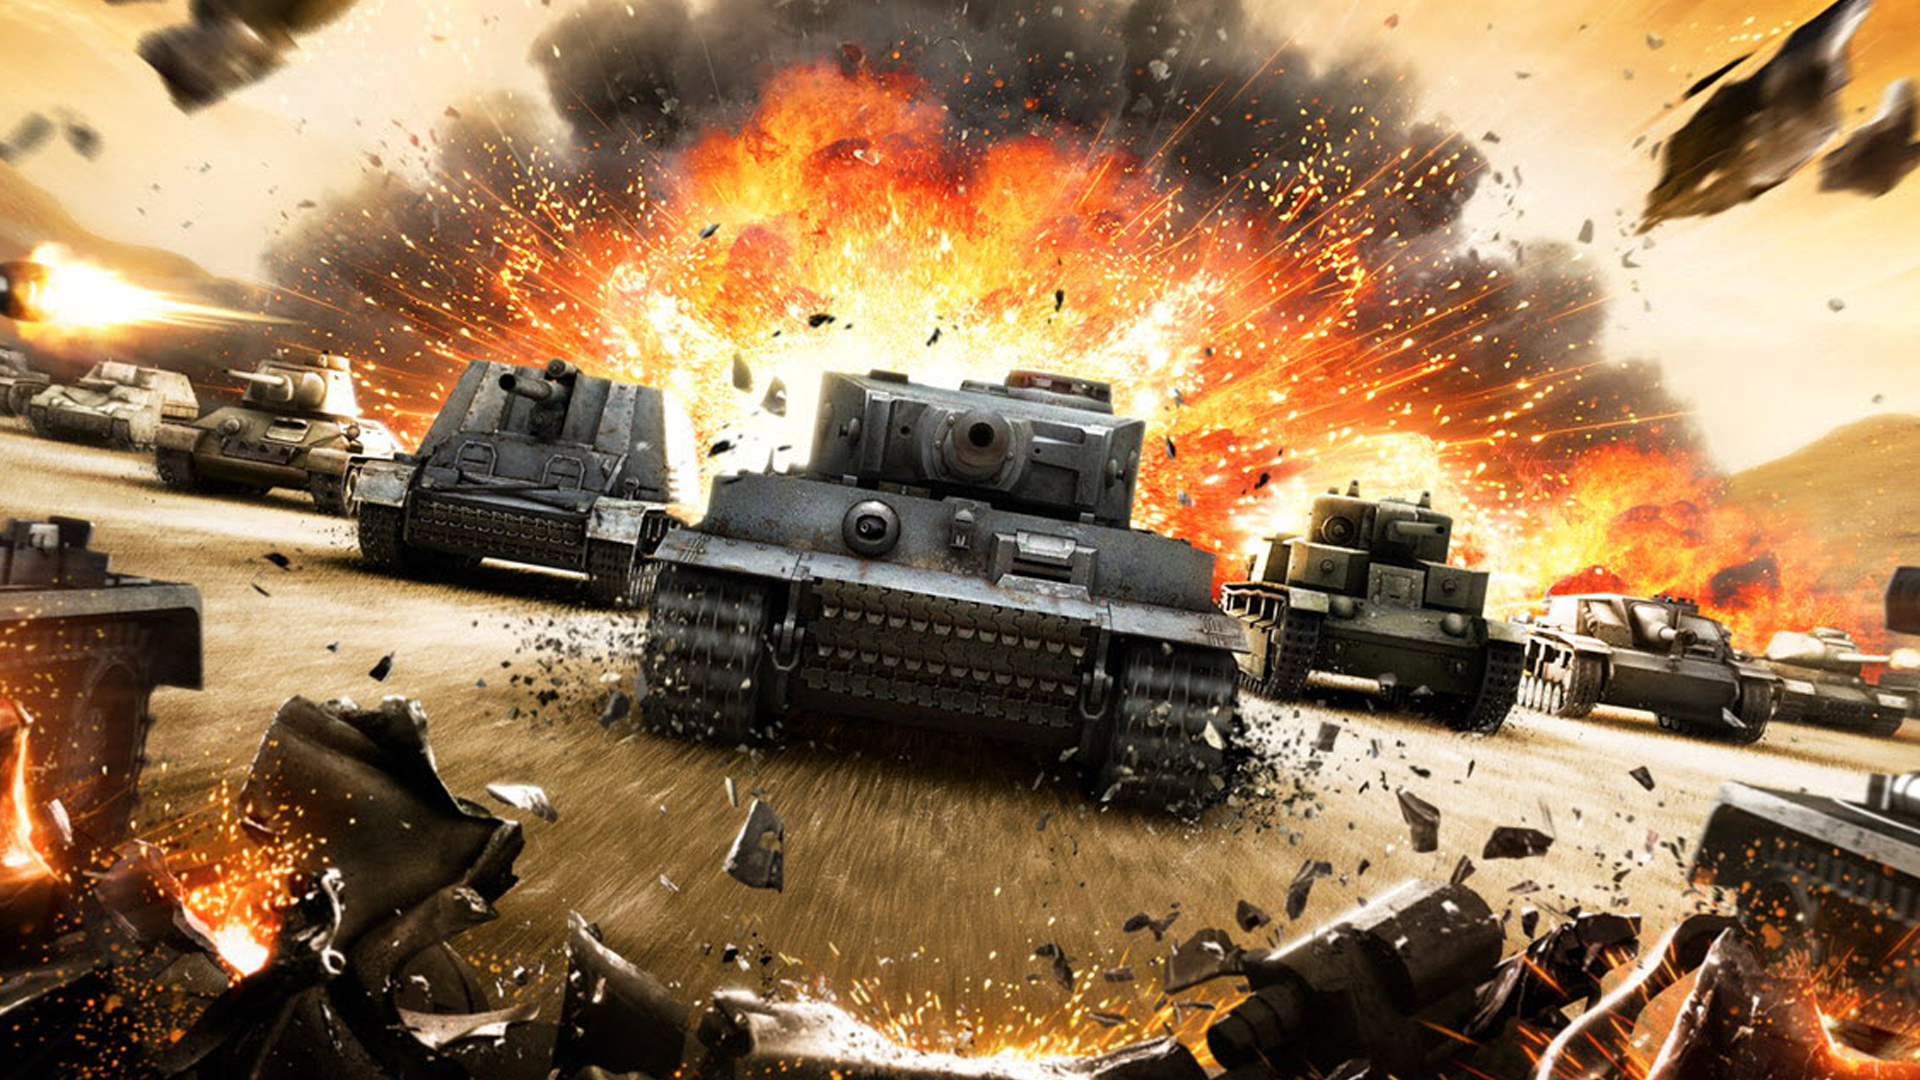 World of Tanks: Xbox 360 Edition Gets New 1.2 Update, Adding Weather Effects, New Tanks, and More | DualShockers